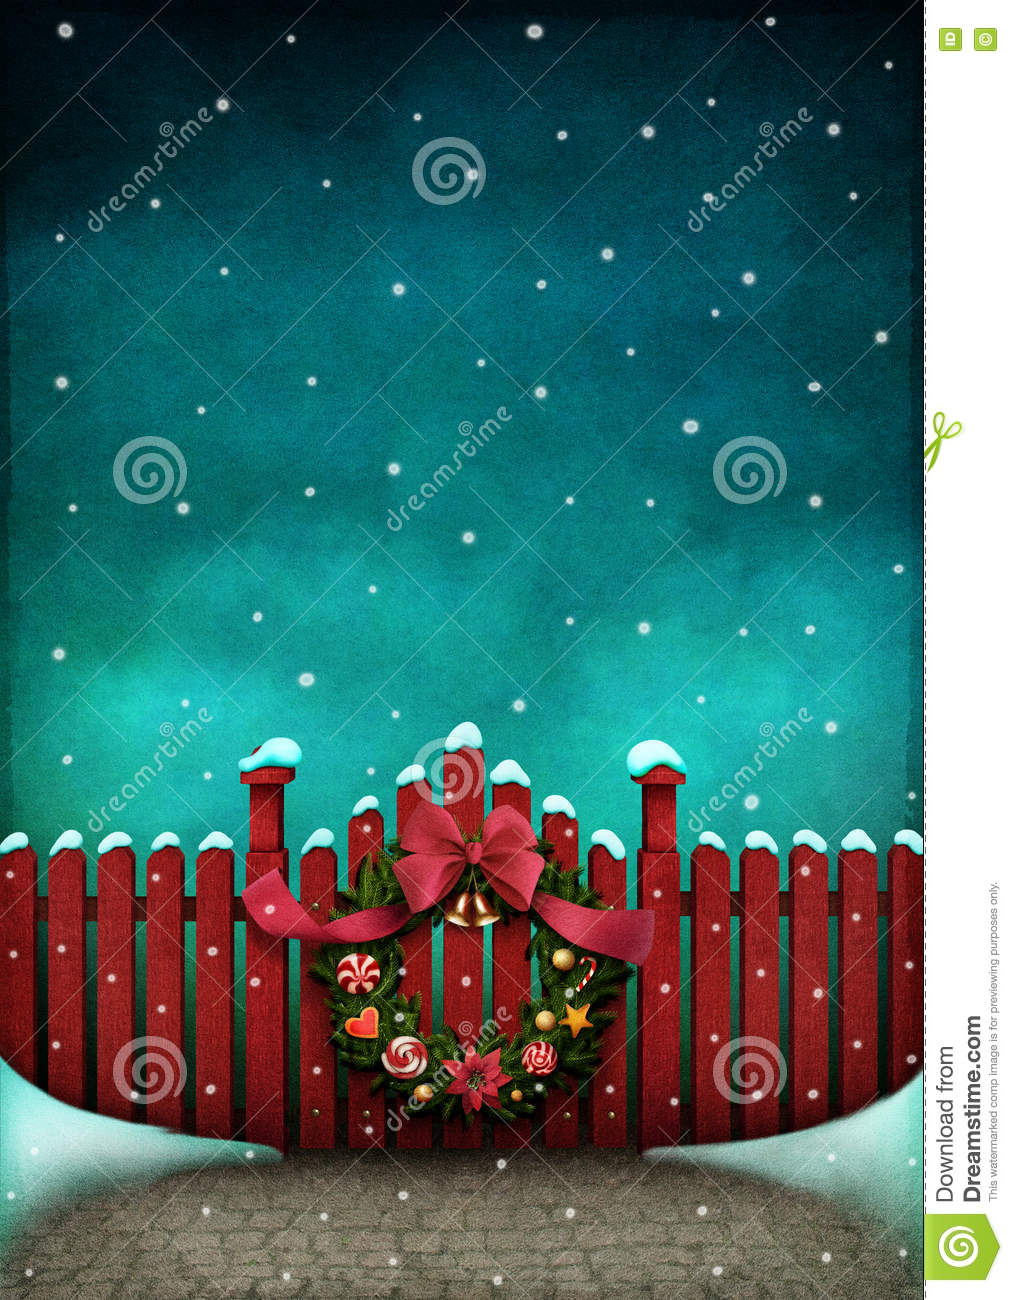 Red fence and Christmas wreath